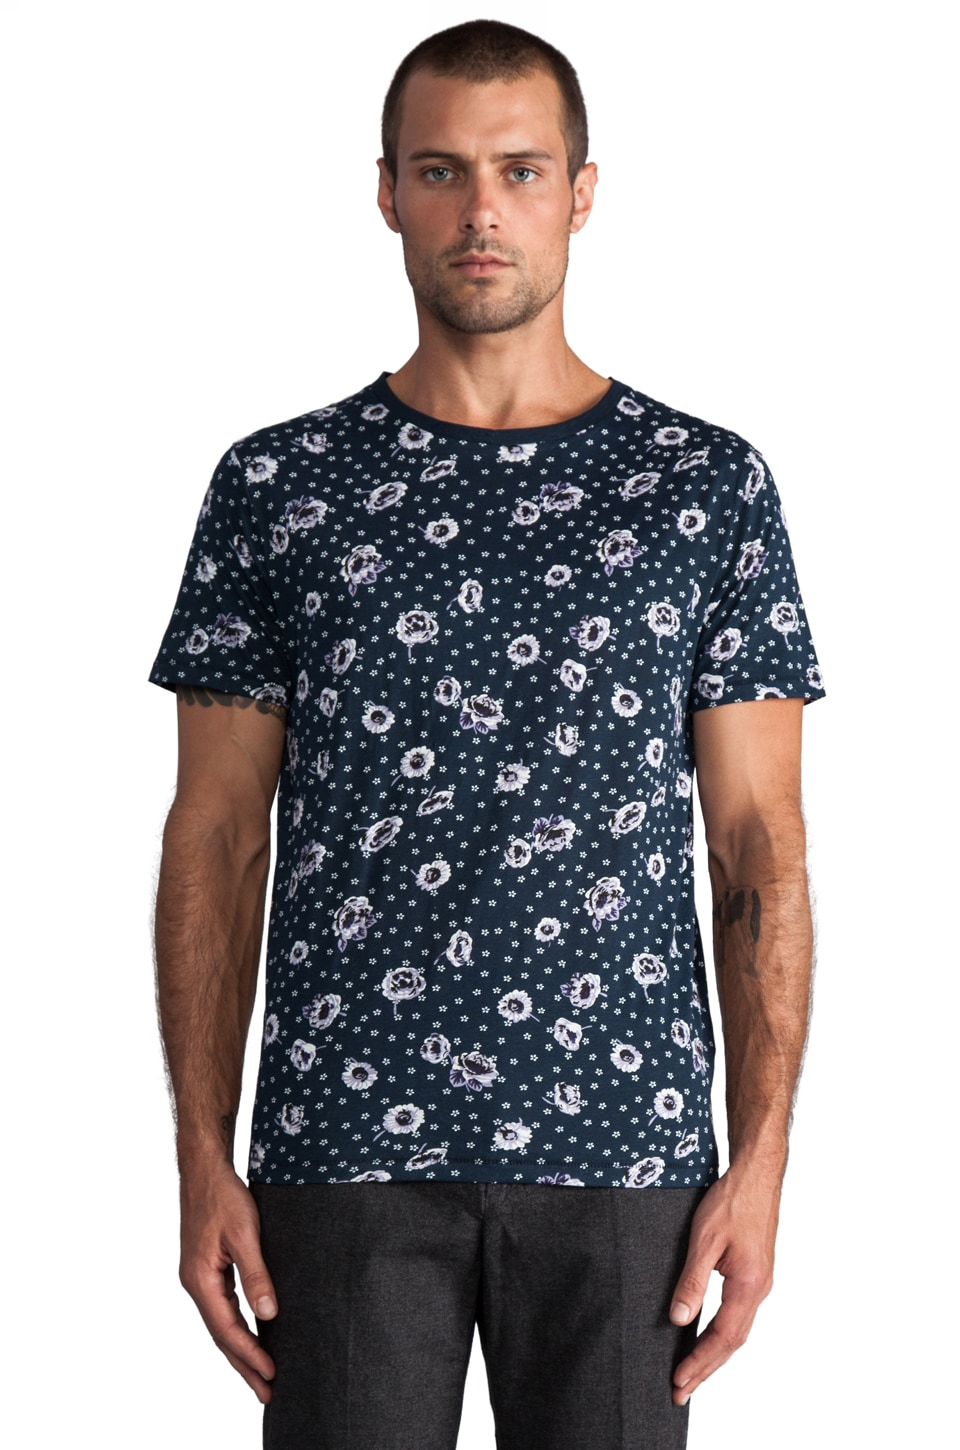 GANT Rugger Coming Up Roses Tee en Marine